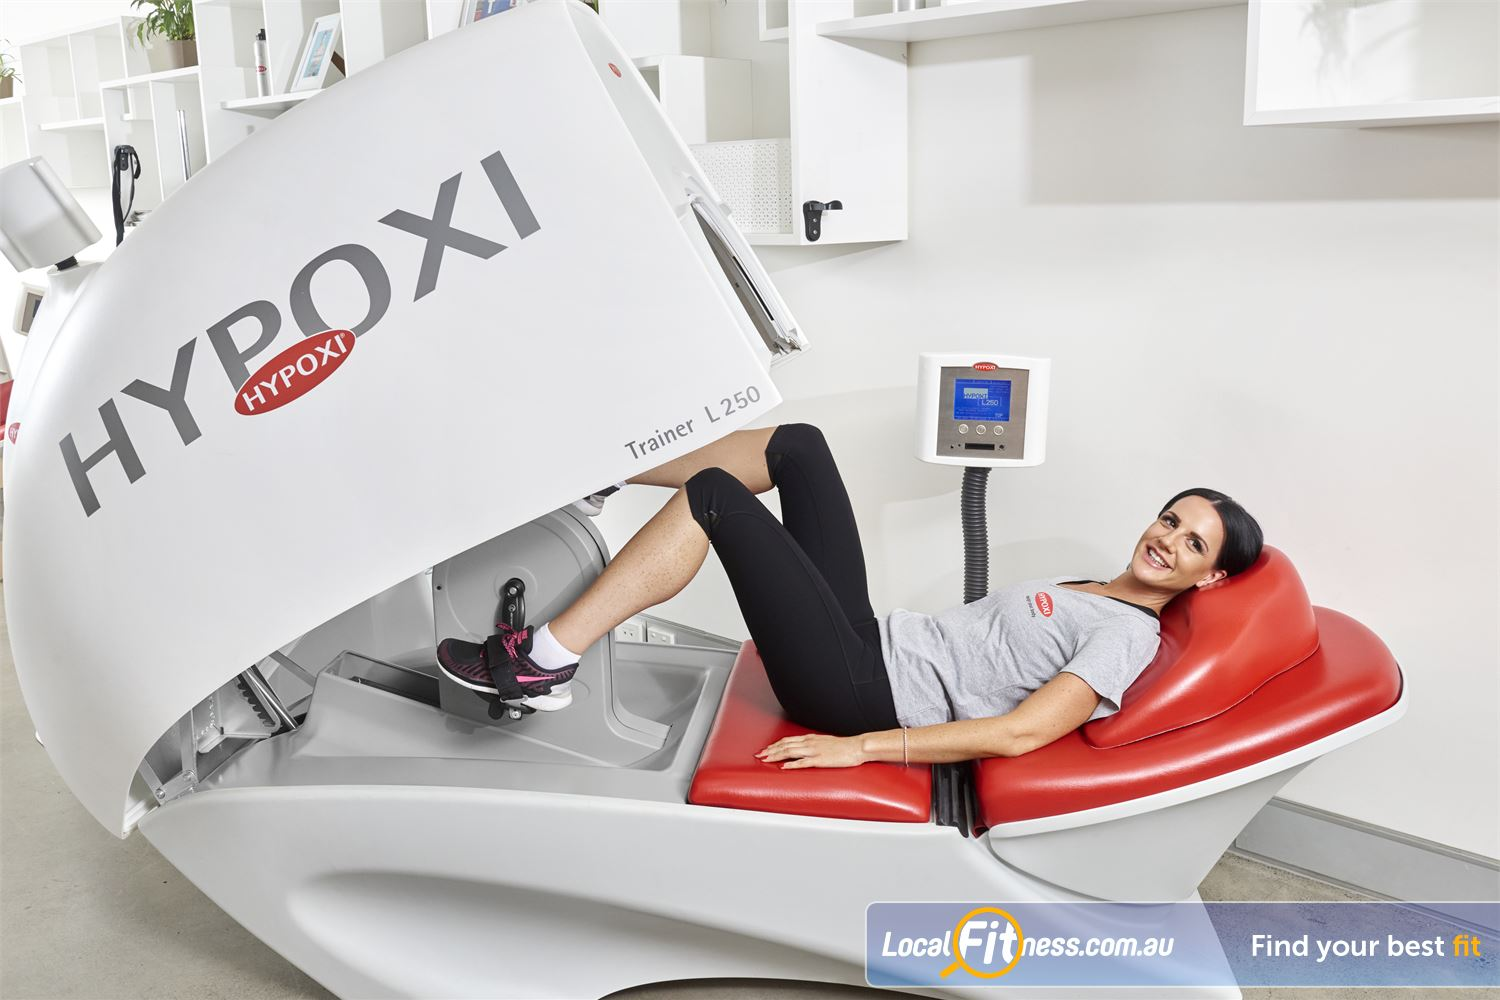 HYPOXI Weight Loss Near North Balgowlah All it takes is 30 minutes of low-impact exercise in our Balgowlah weight-loss studio.